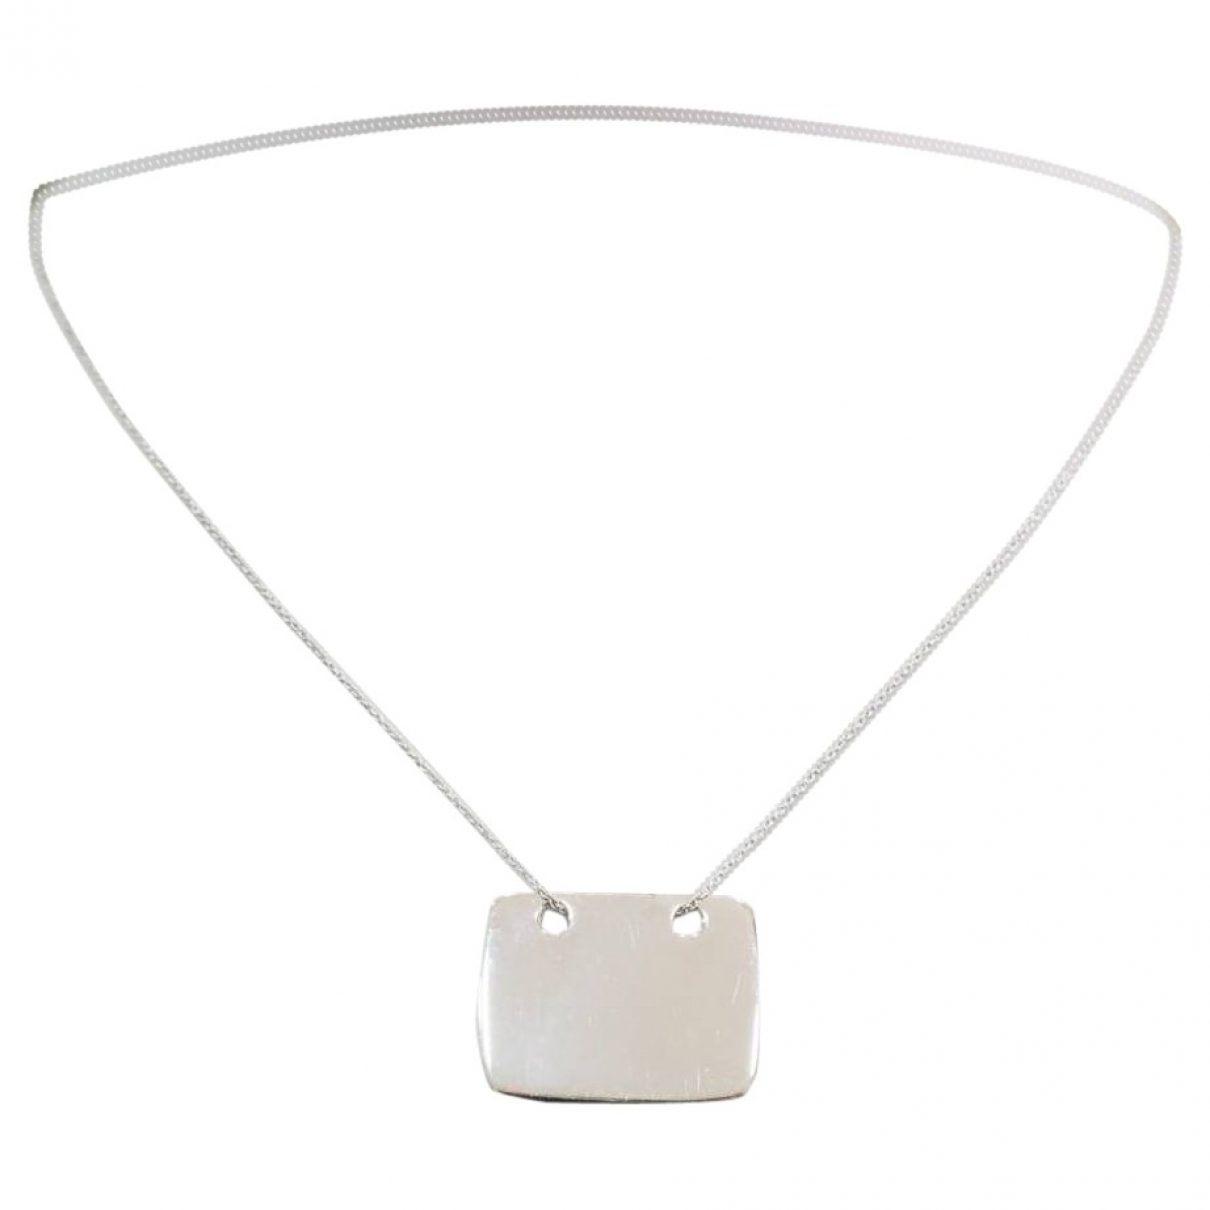 Ginette Ny \N Silver White gold necklace for Women \N